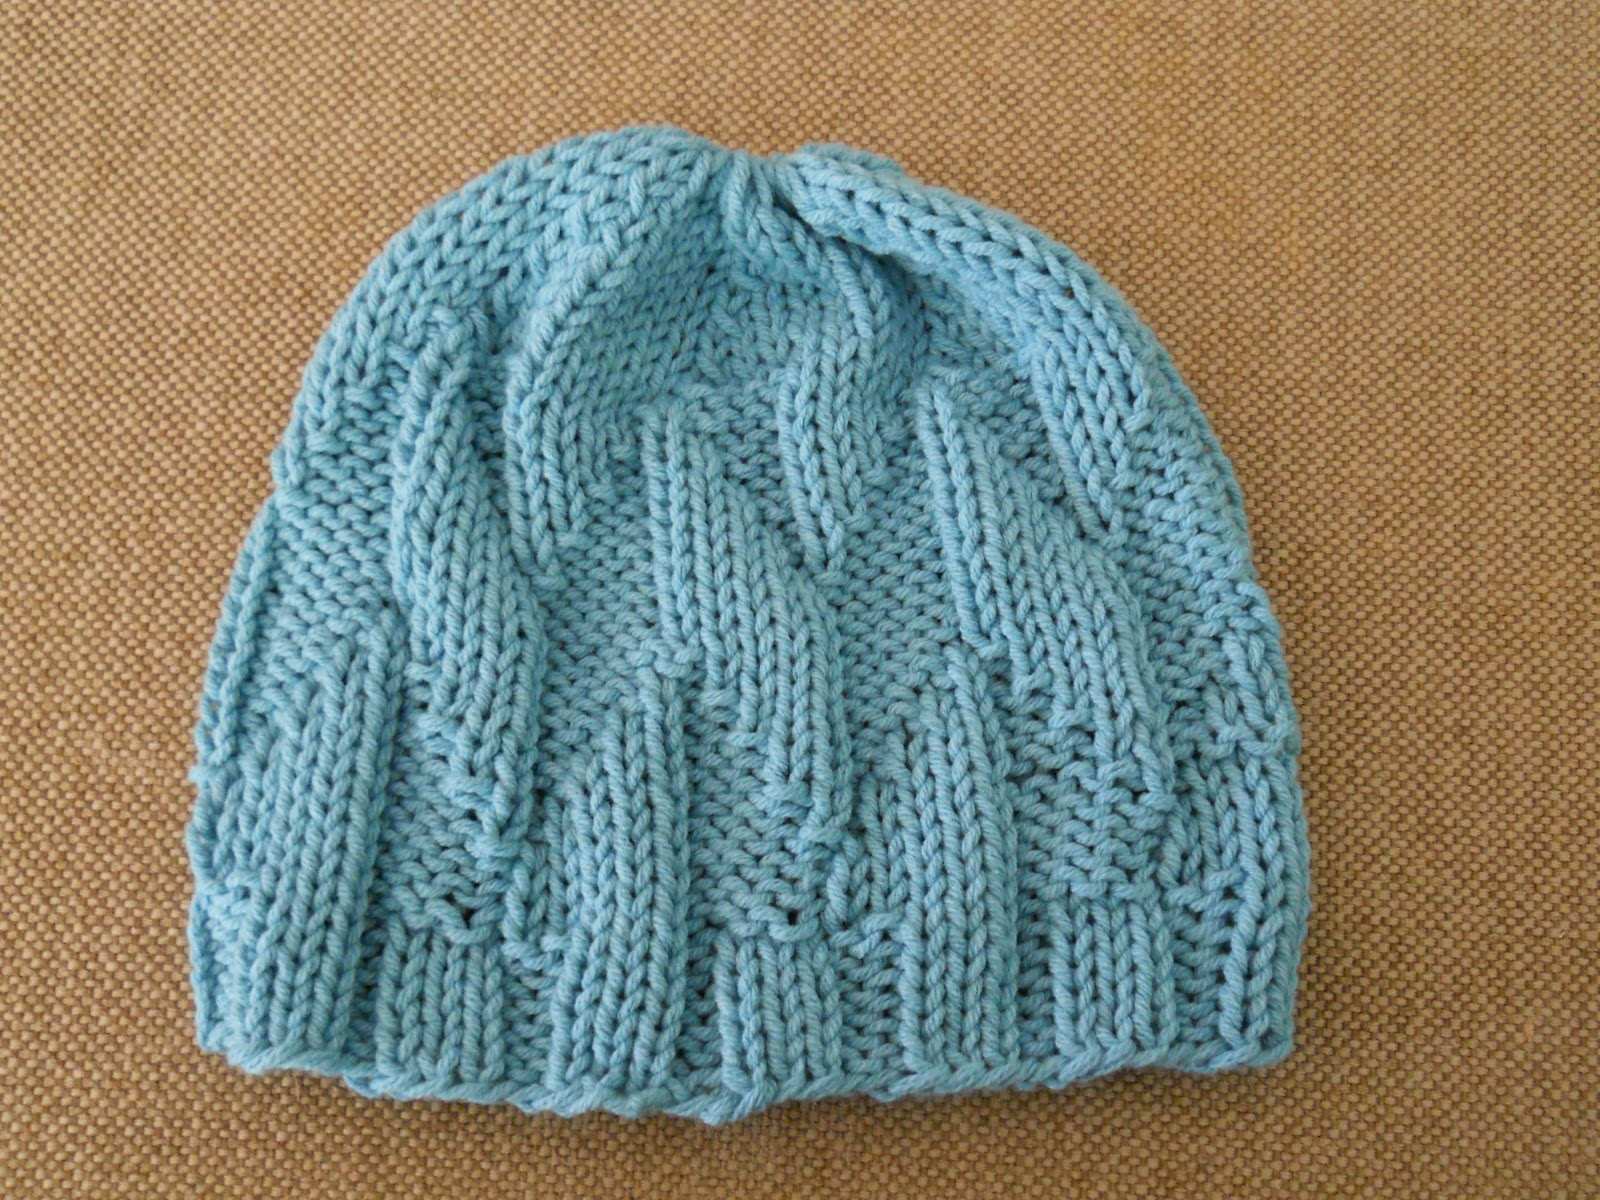 Knitting with Schnapps: Introducing the Waves of Hope ...